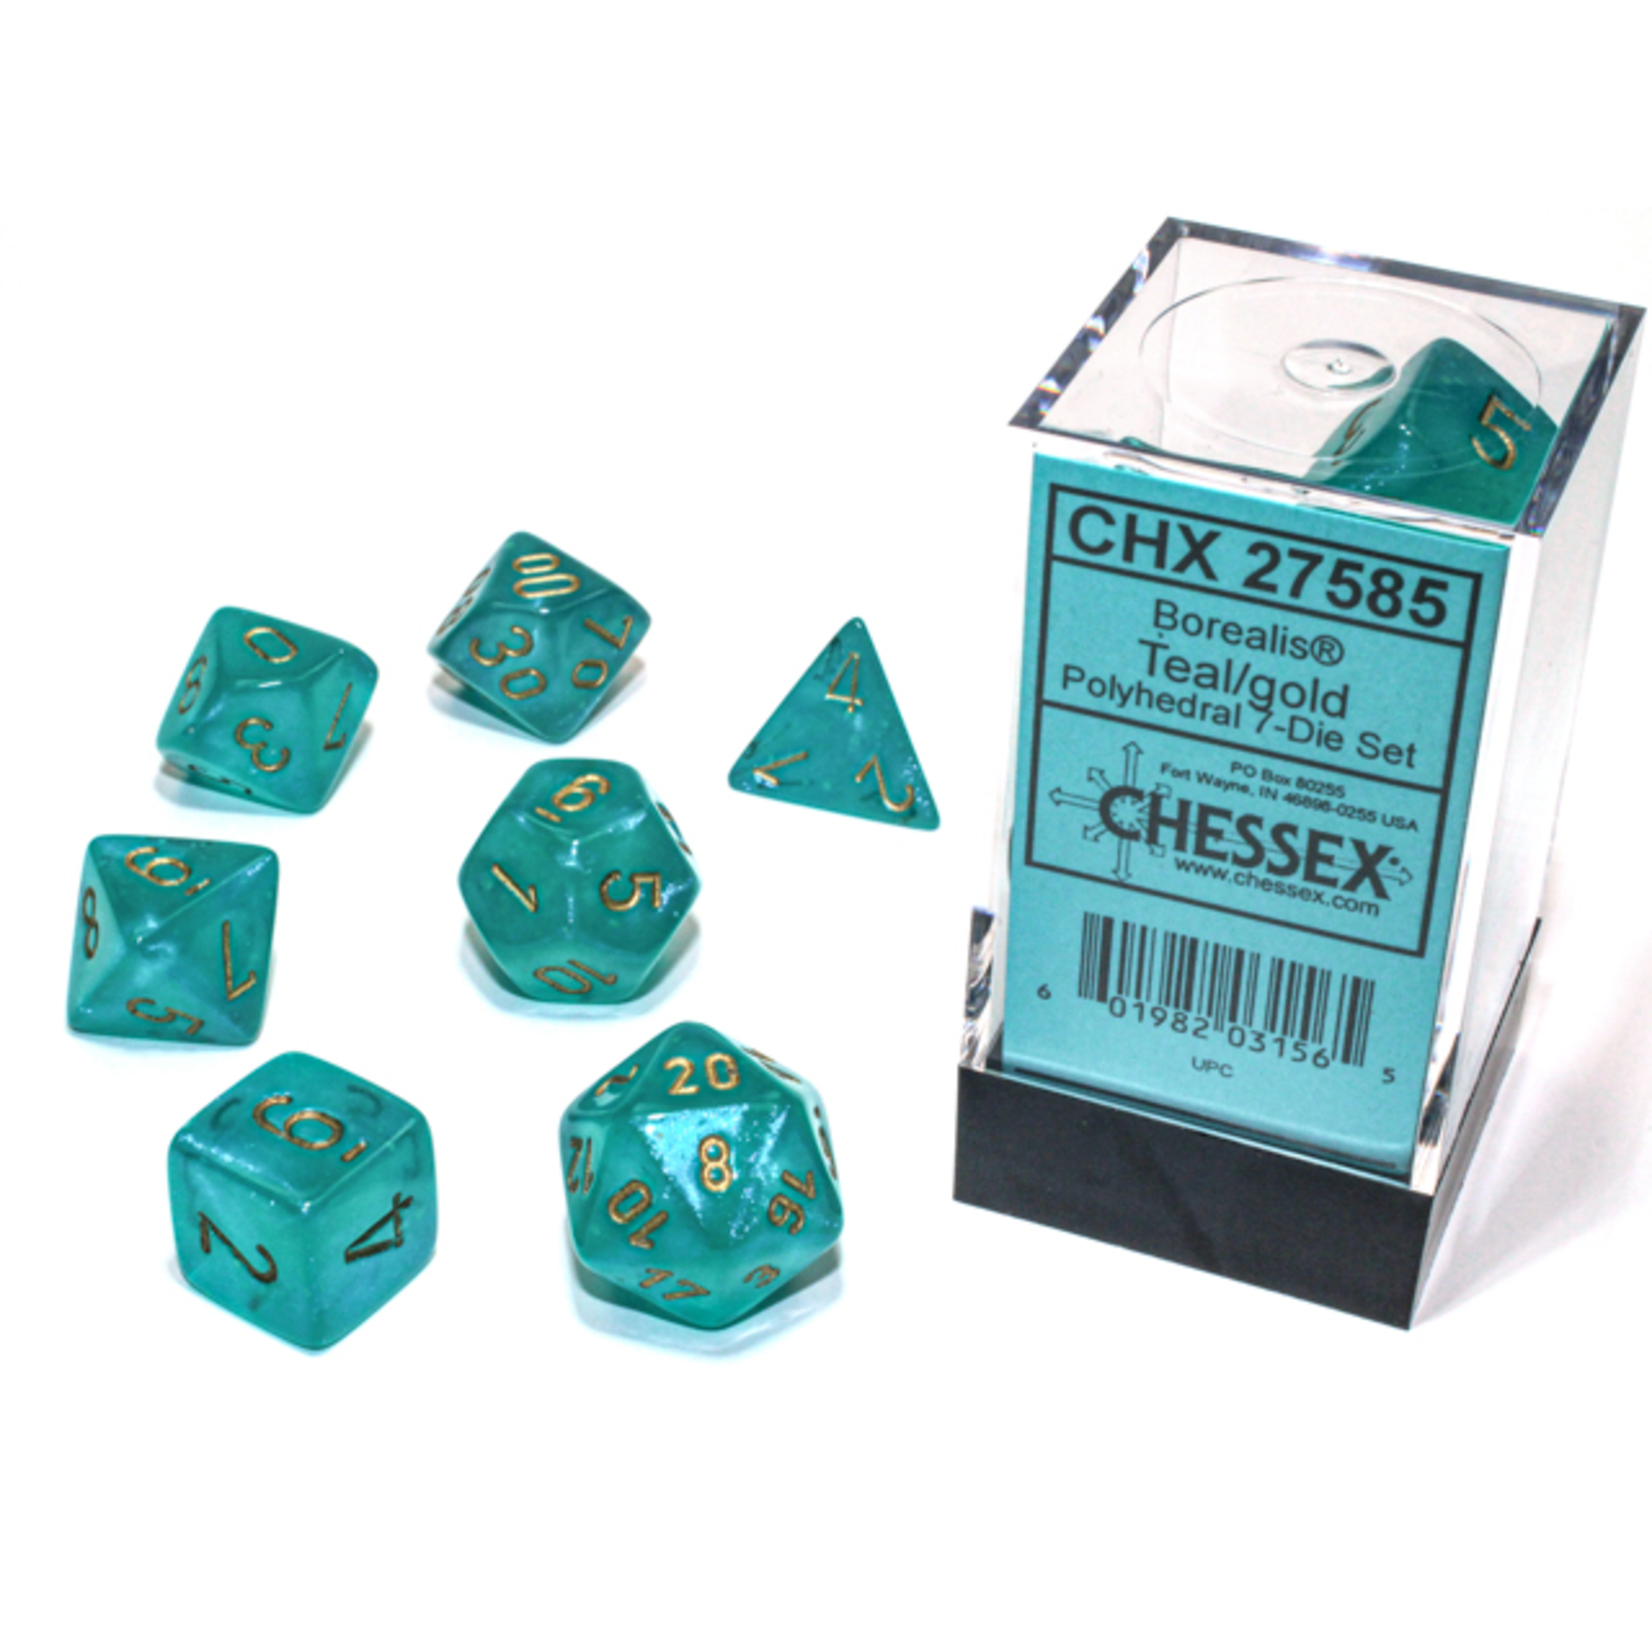 Chessex Dice: 7-Set Borealis Luminary Teal with Gold Numbers (CHX)